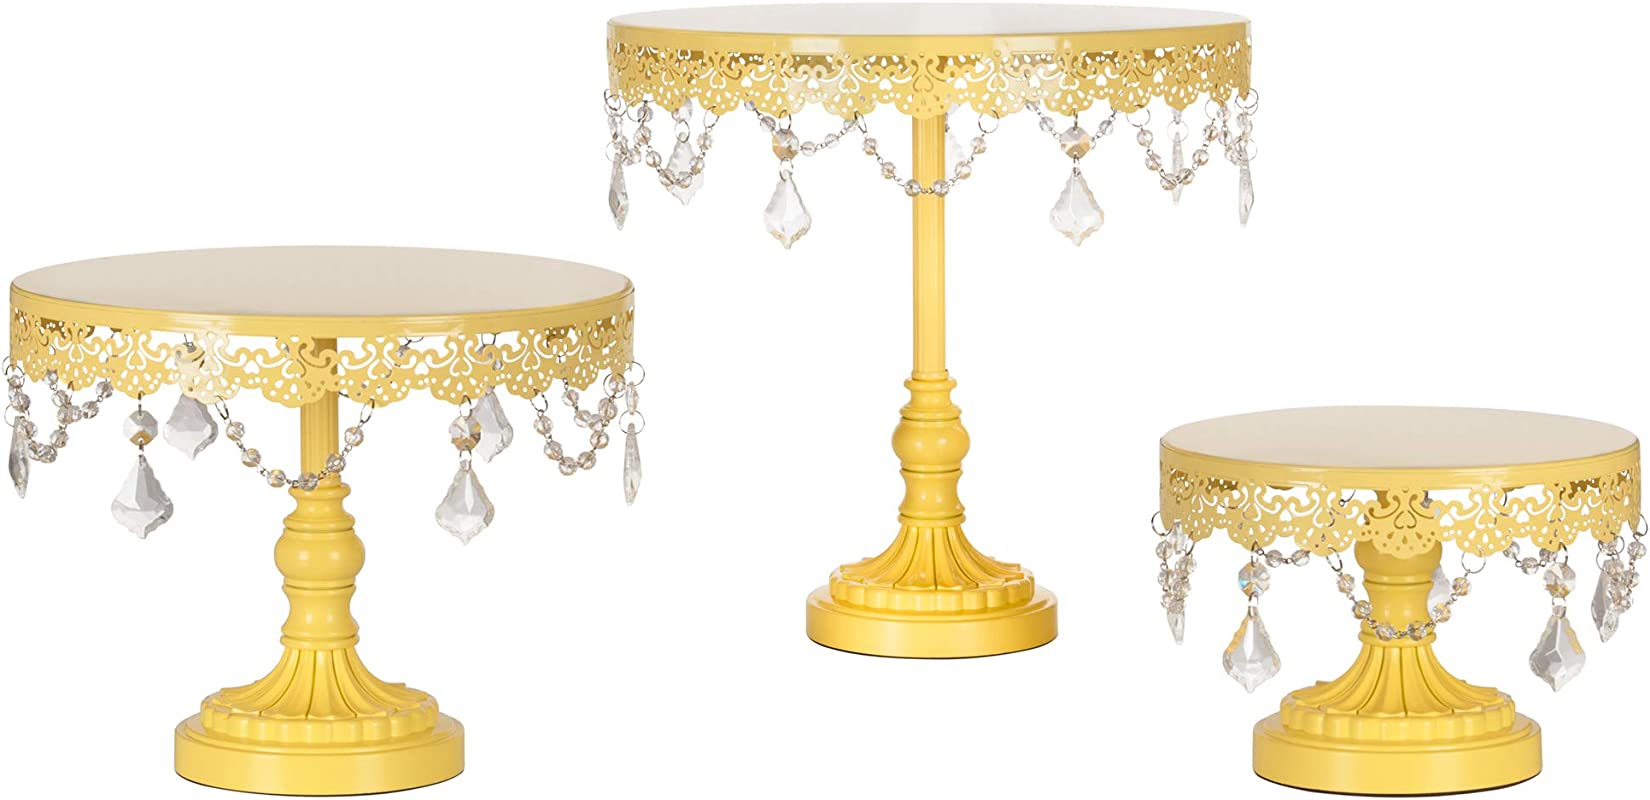 Amalfi Decor Cake Stand Set Of 3 Pack Dessert Cupcake Pastry Candy Display Plate For Wedding Event Birthday Party Round Metal Pedestal Holder With Crystals Yellow